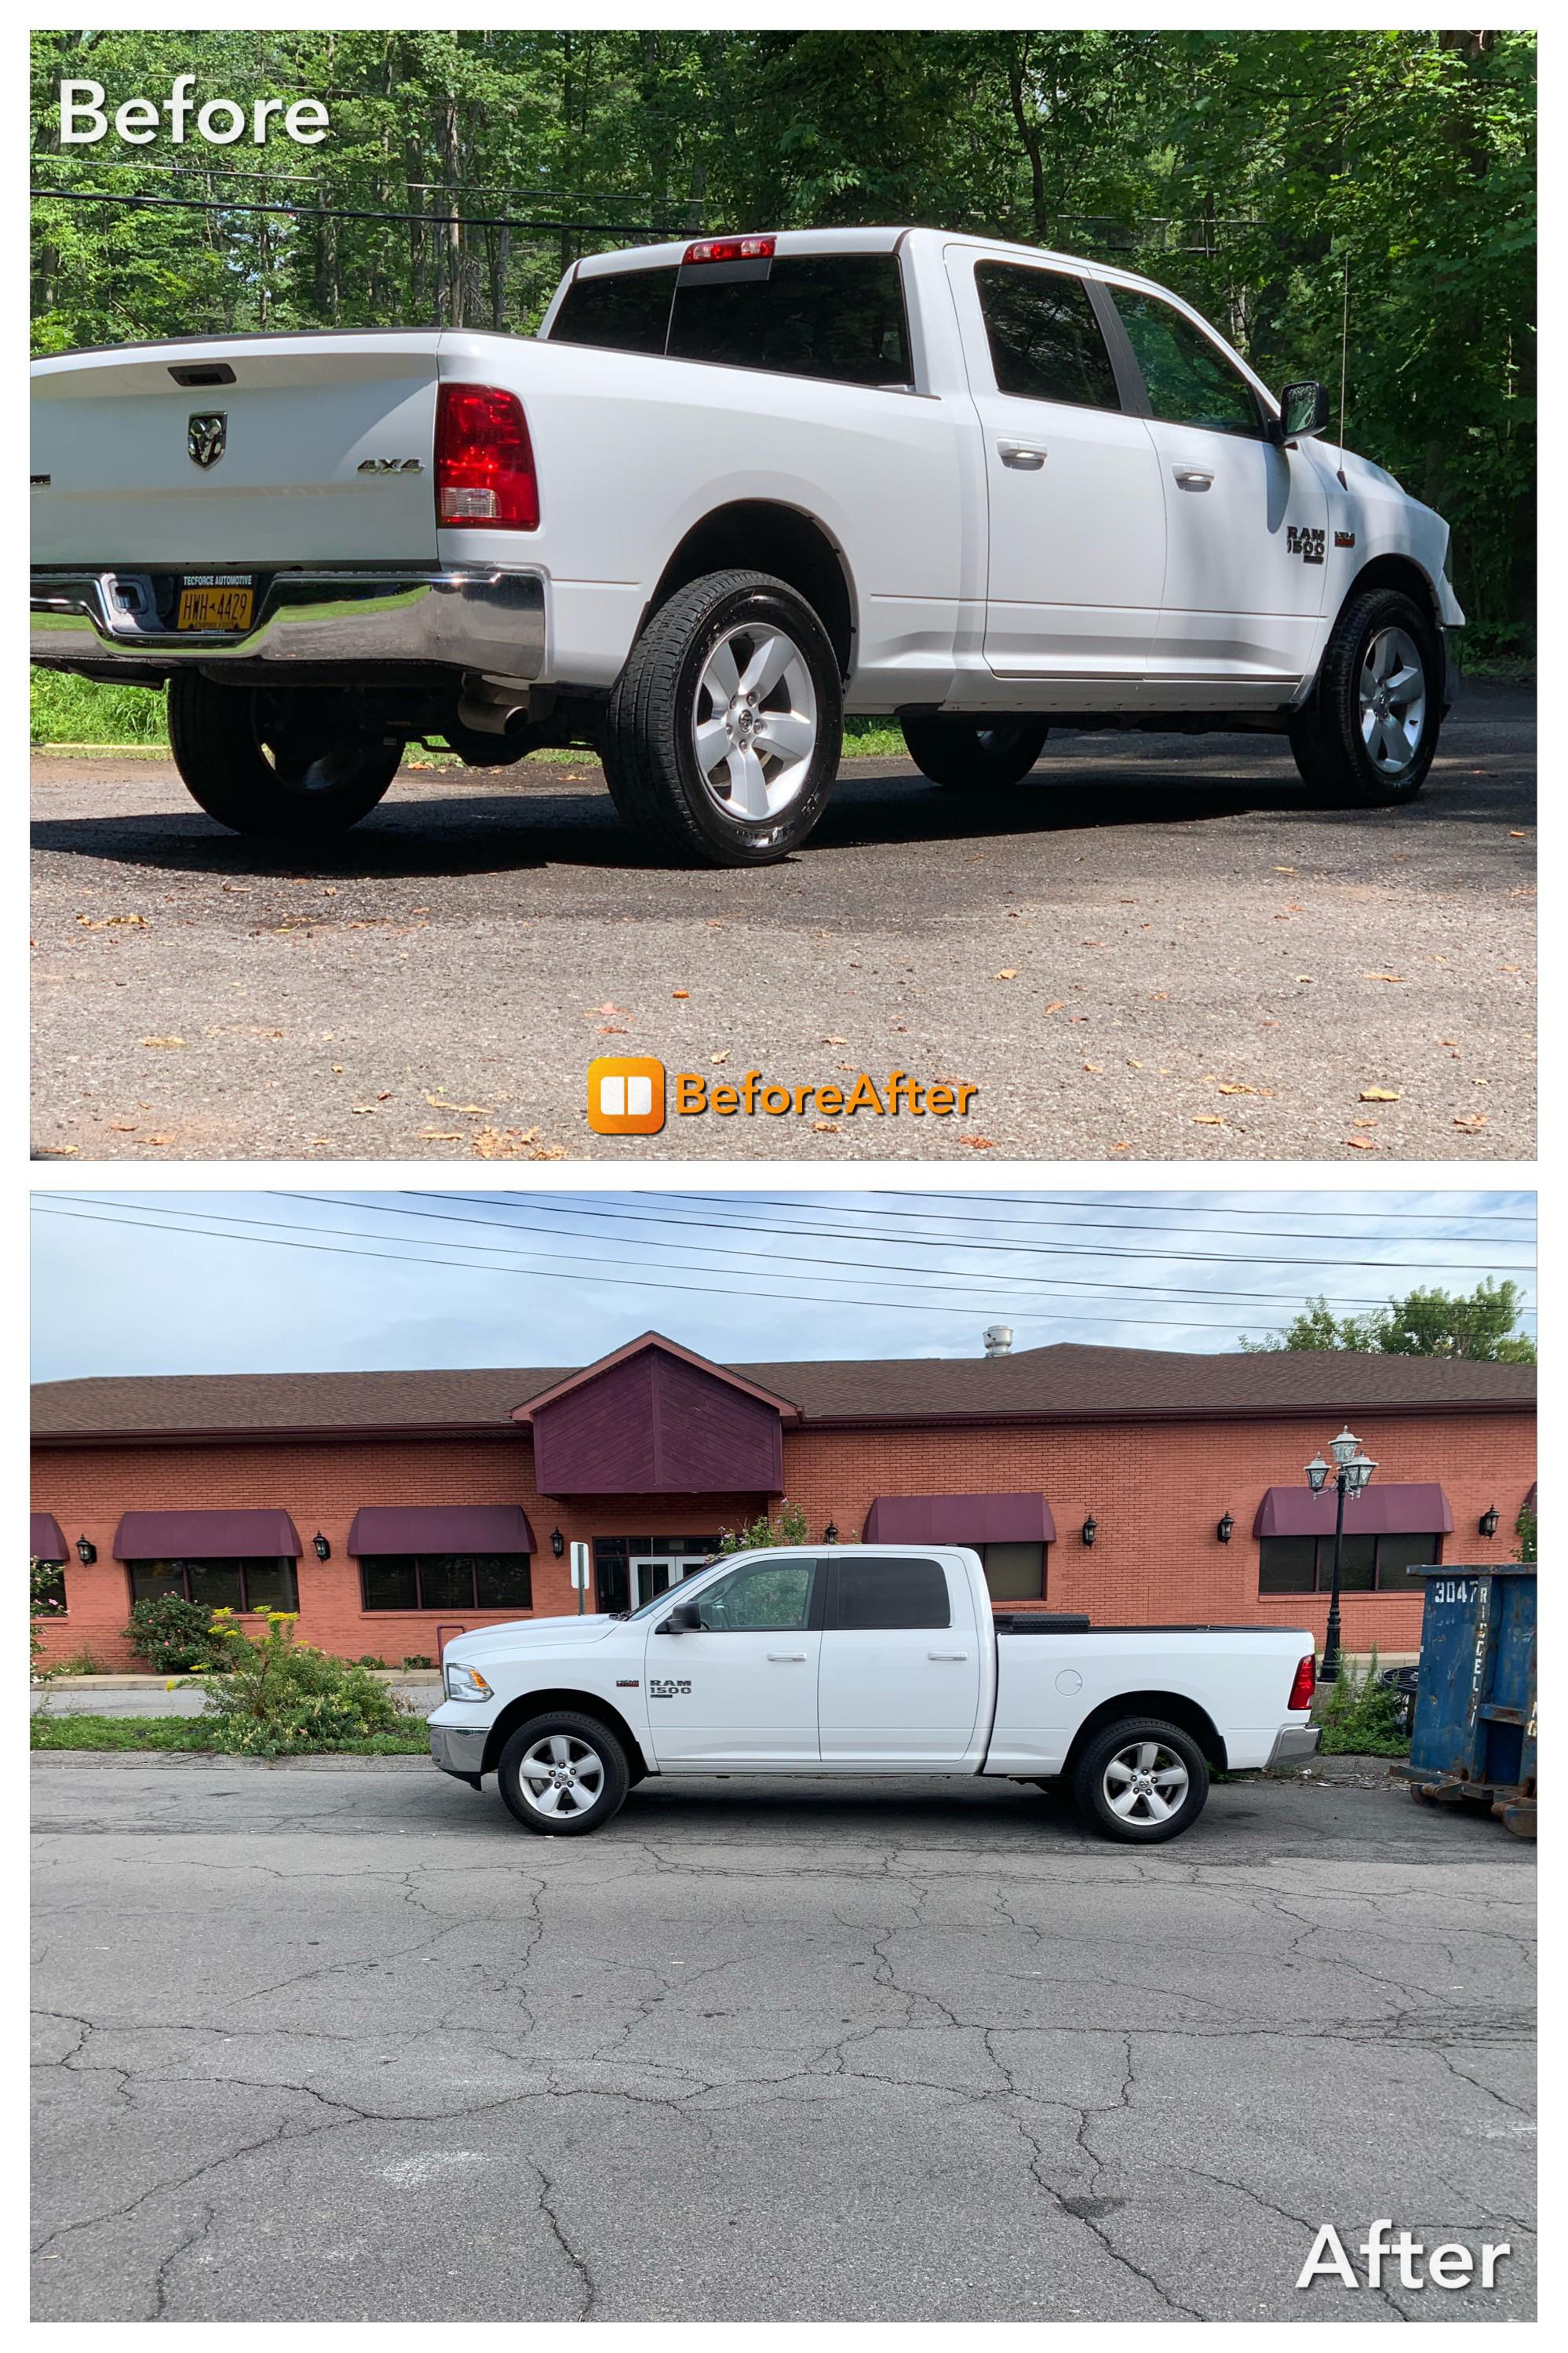 "Lift Kit Before And After : before, after, Classic, Before, After, 2.5"", Leveling, Stock, Pictures, There, Ram_trucks"